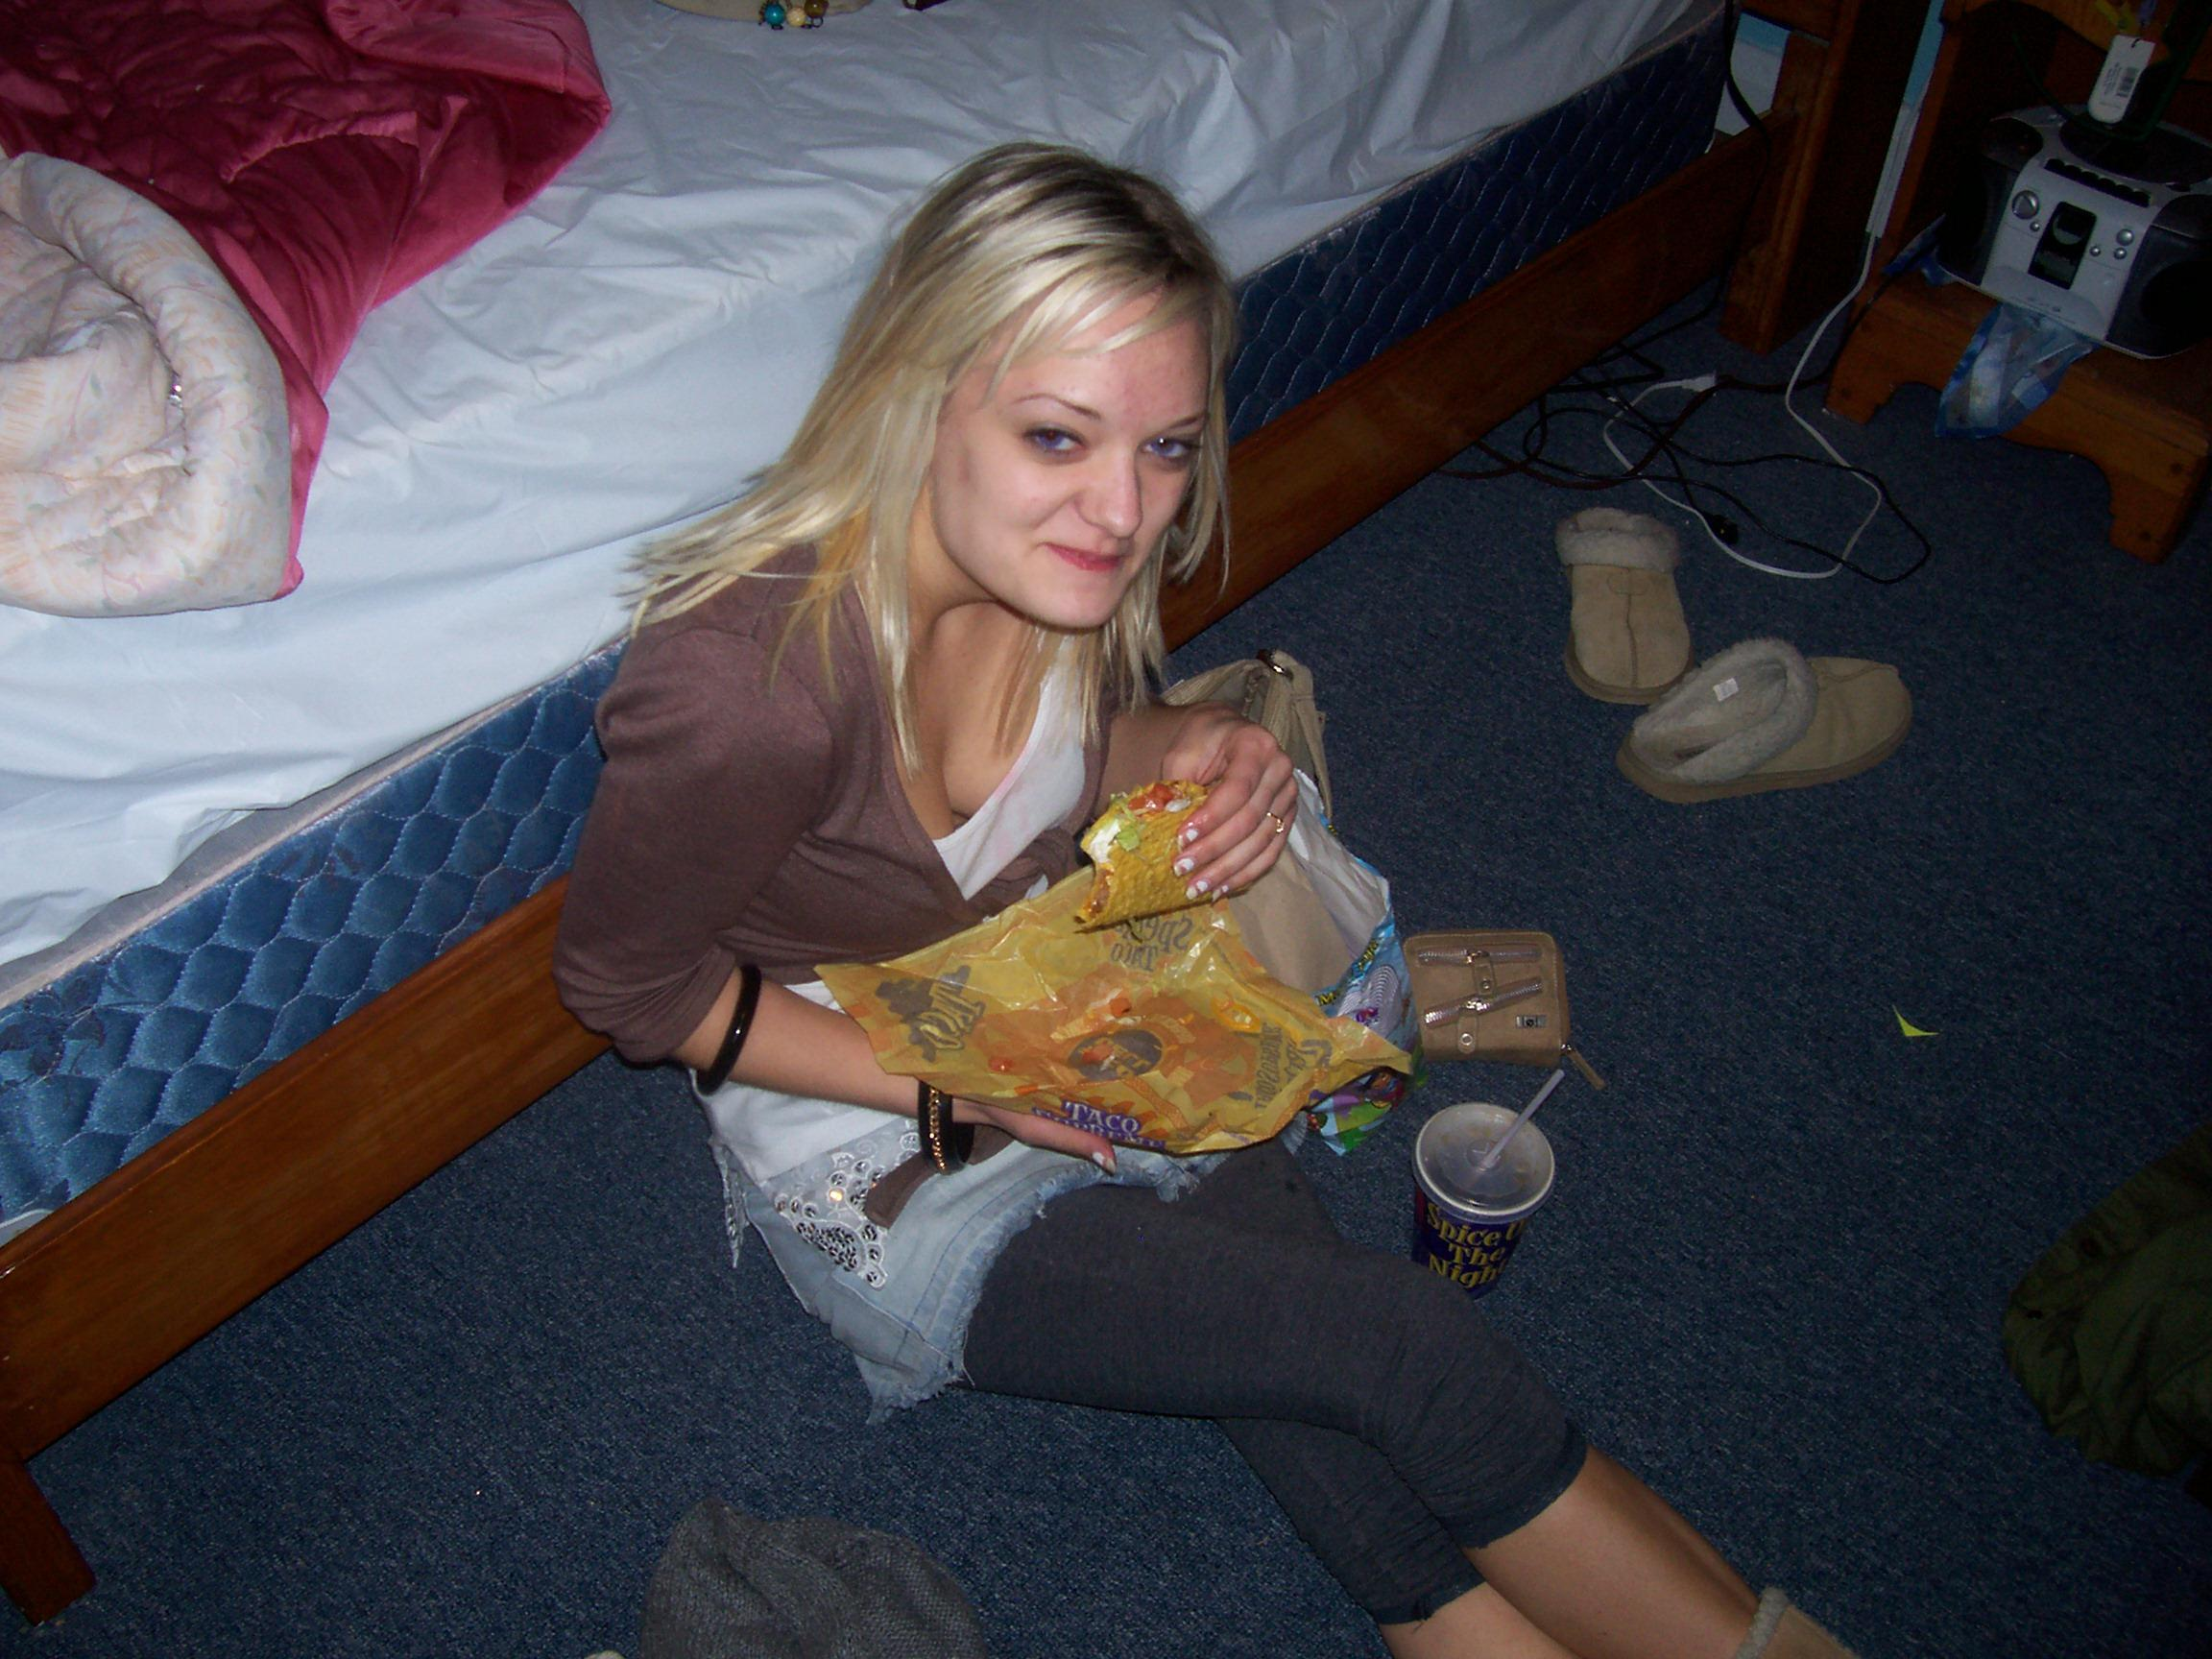 drunk-at-taco-bell-girl